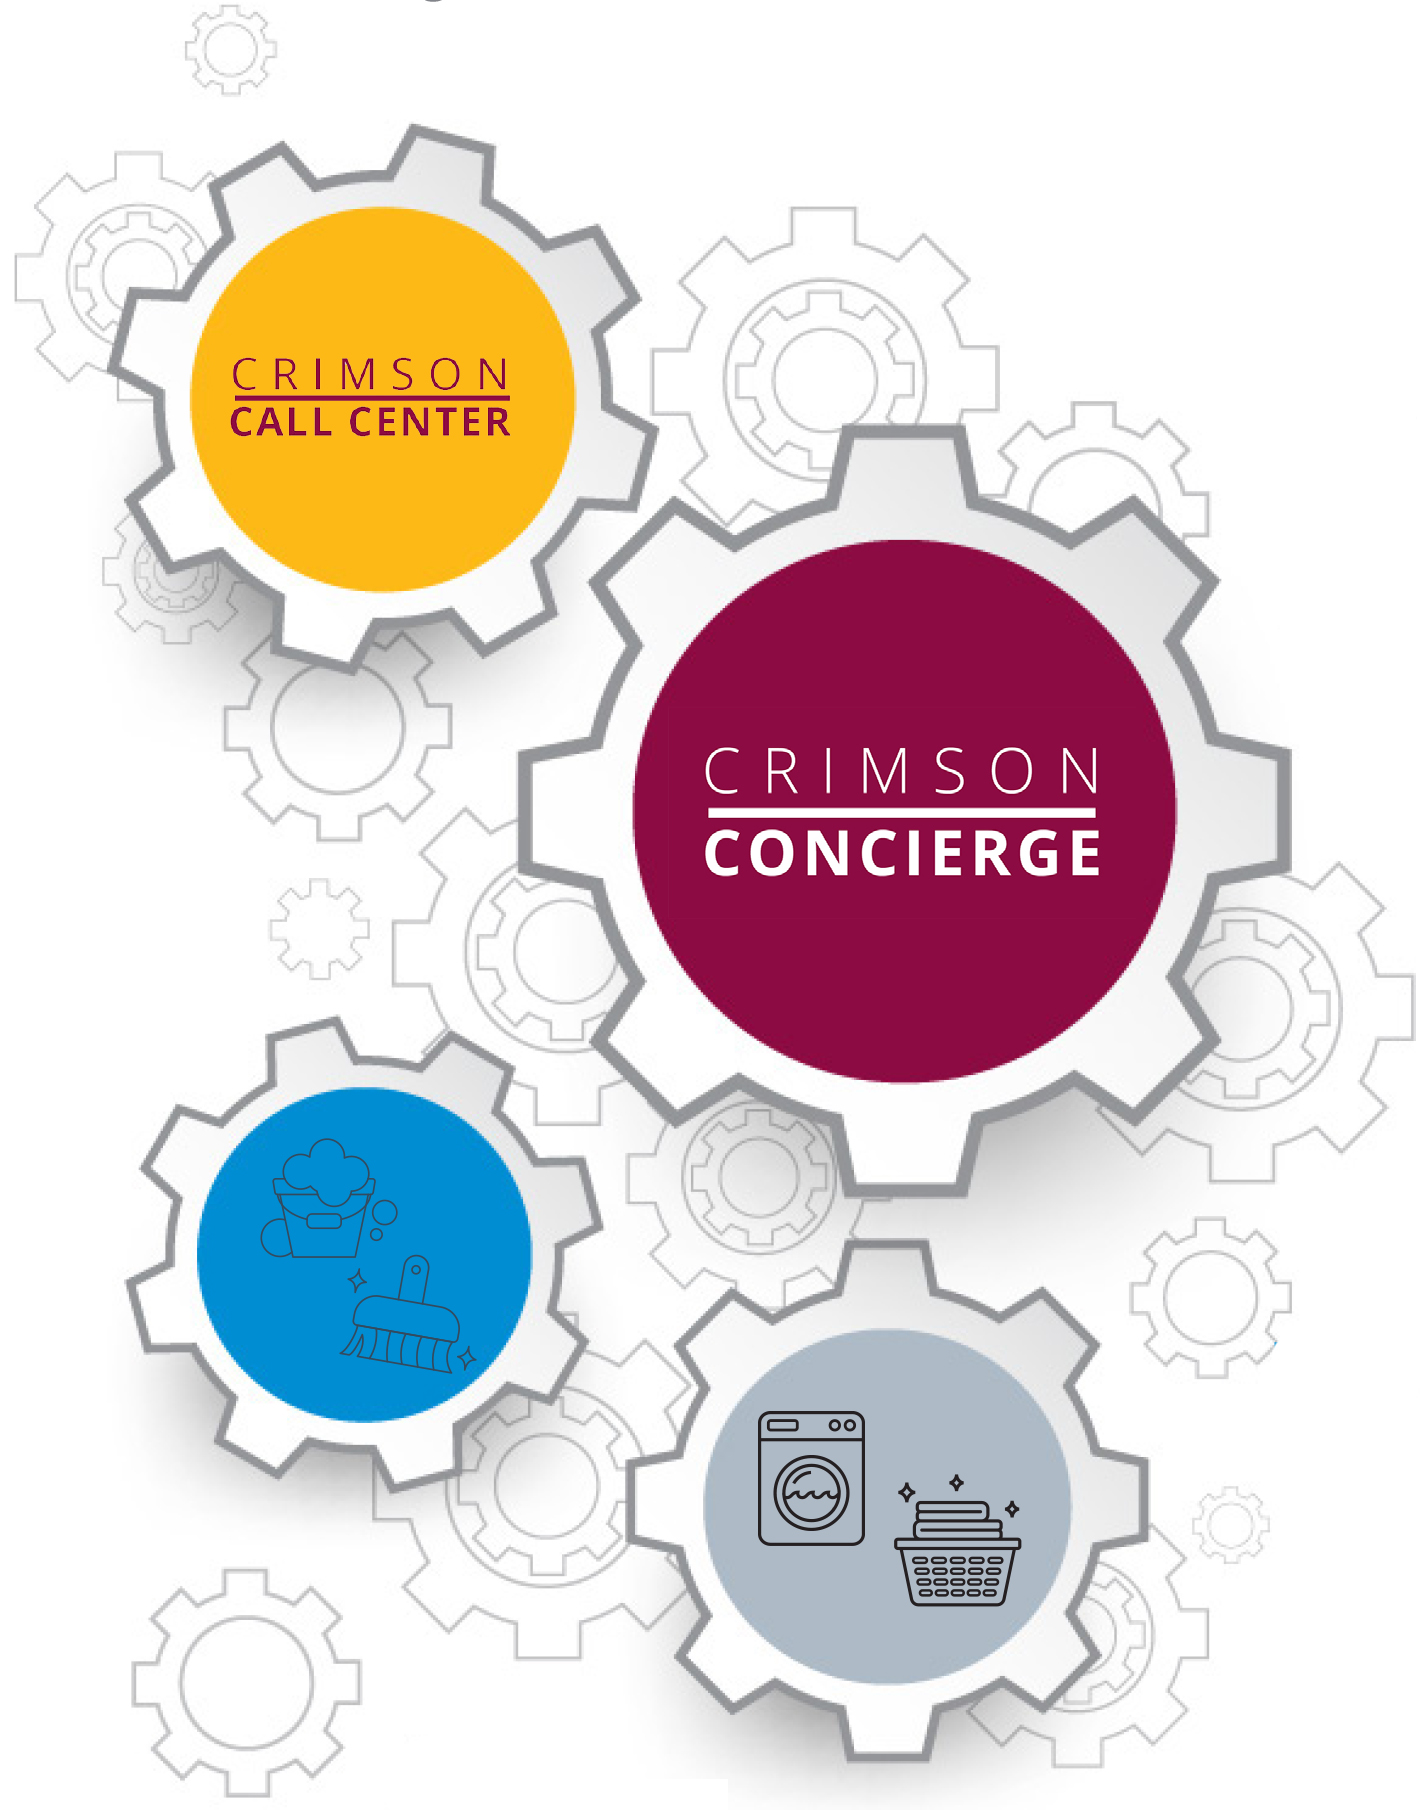 Crimson Concierge and Crimson Call Center